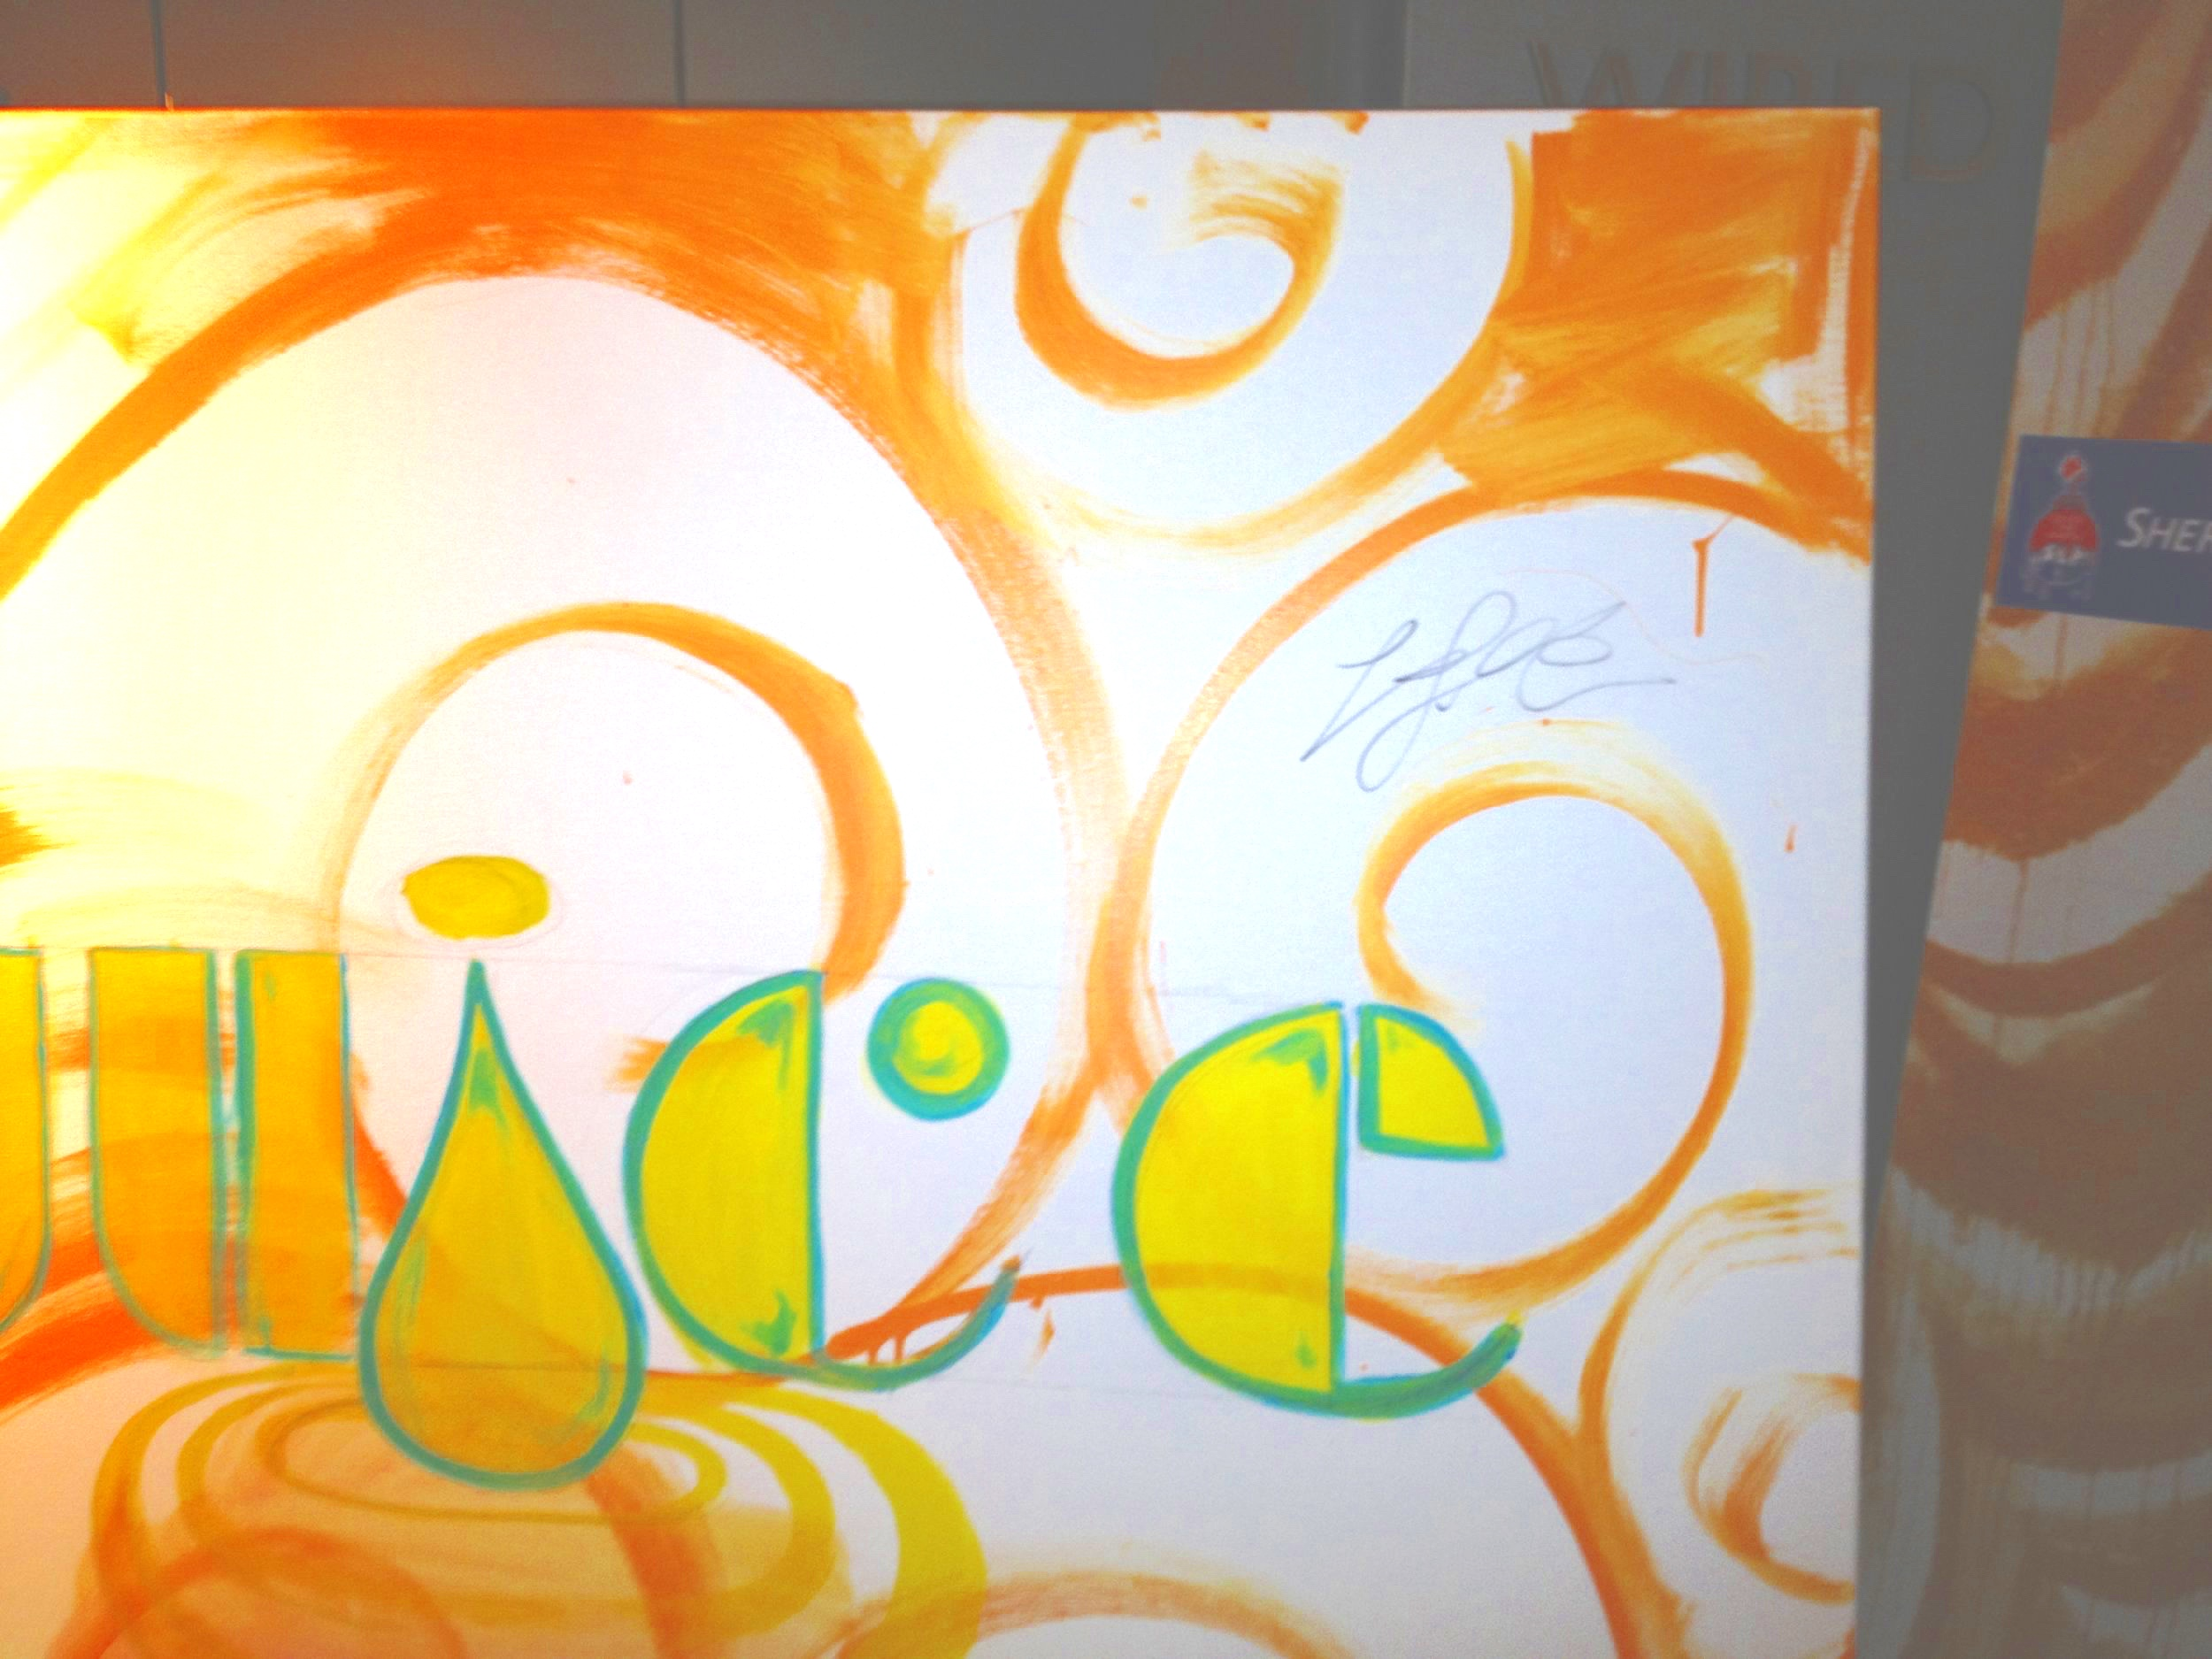 Lebron James signed Kyle Holbrook's Mural - Juice Foundation event at the South Beach W Hotel fashion show to raise funds for Cancer Research.